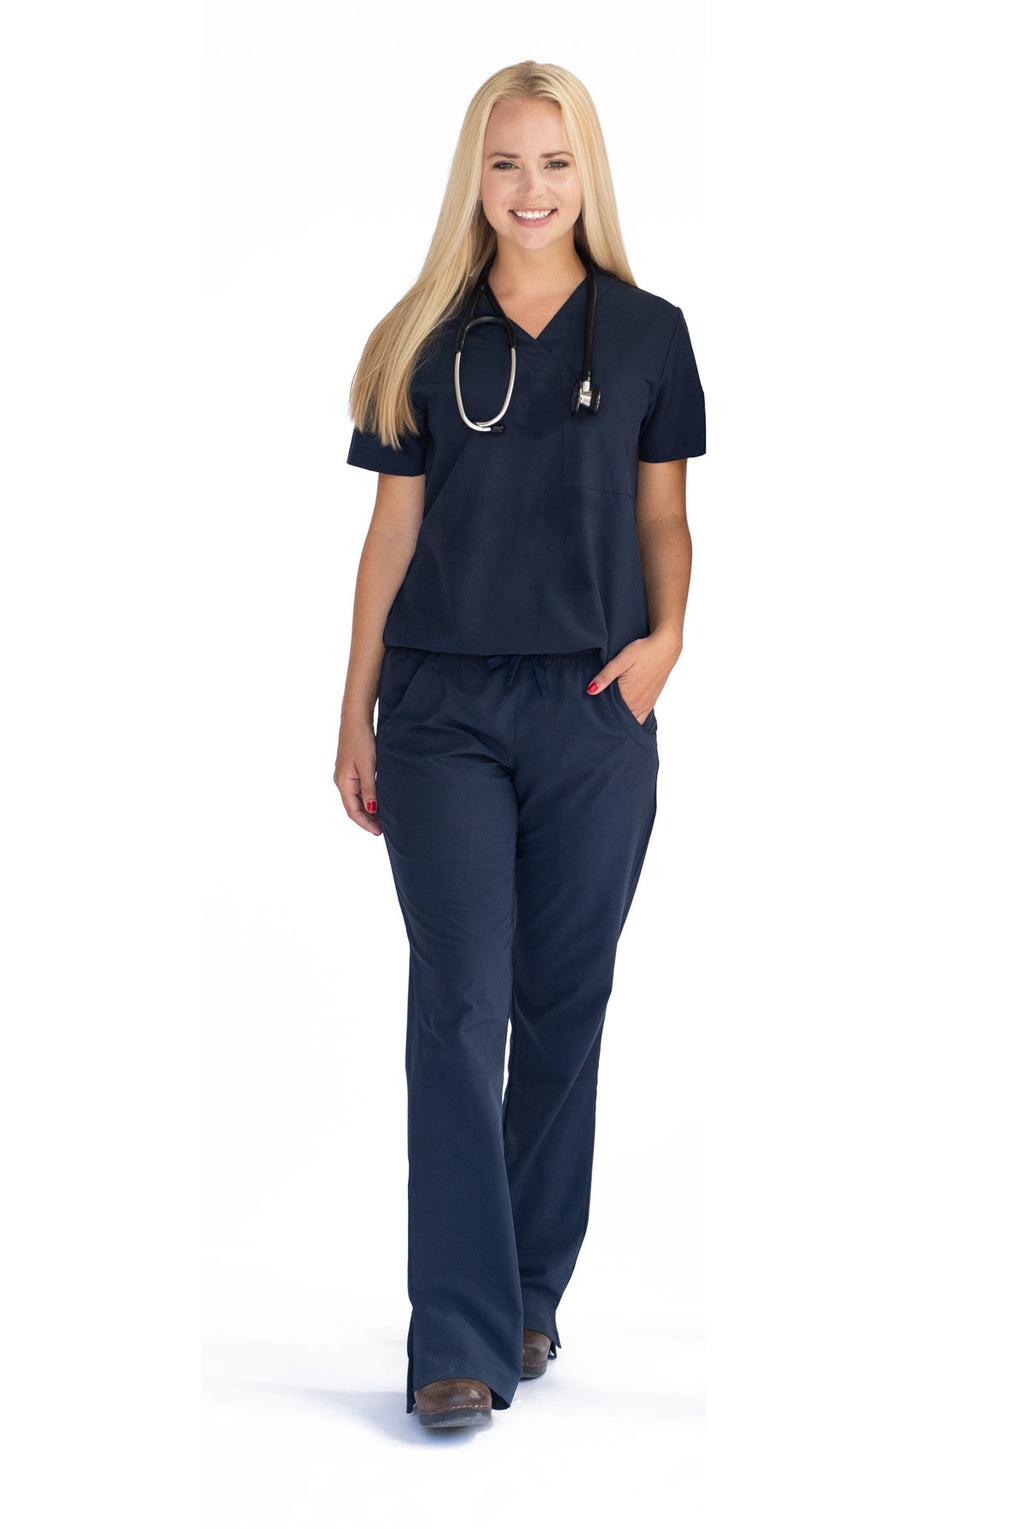 Amelia Athletic Scrub Top - CHNOLA